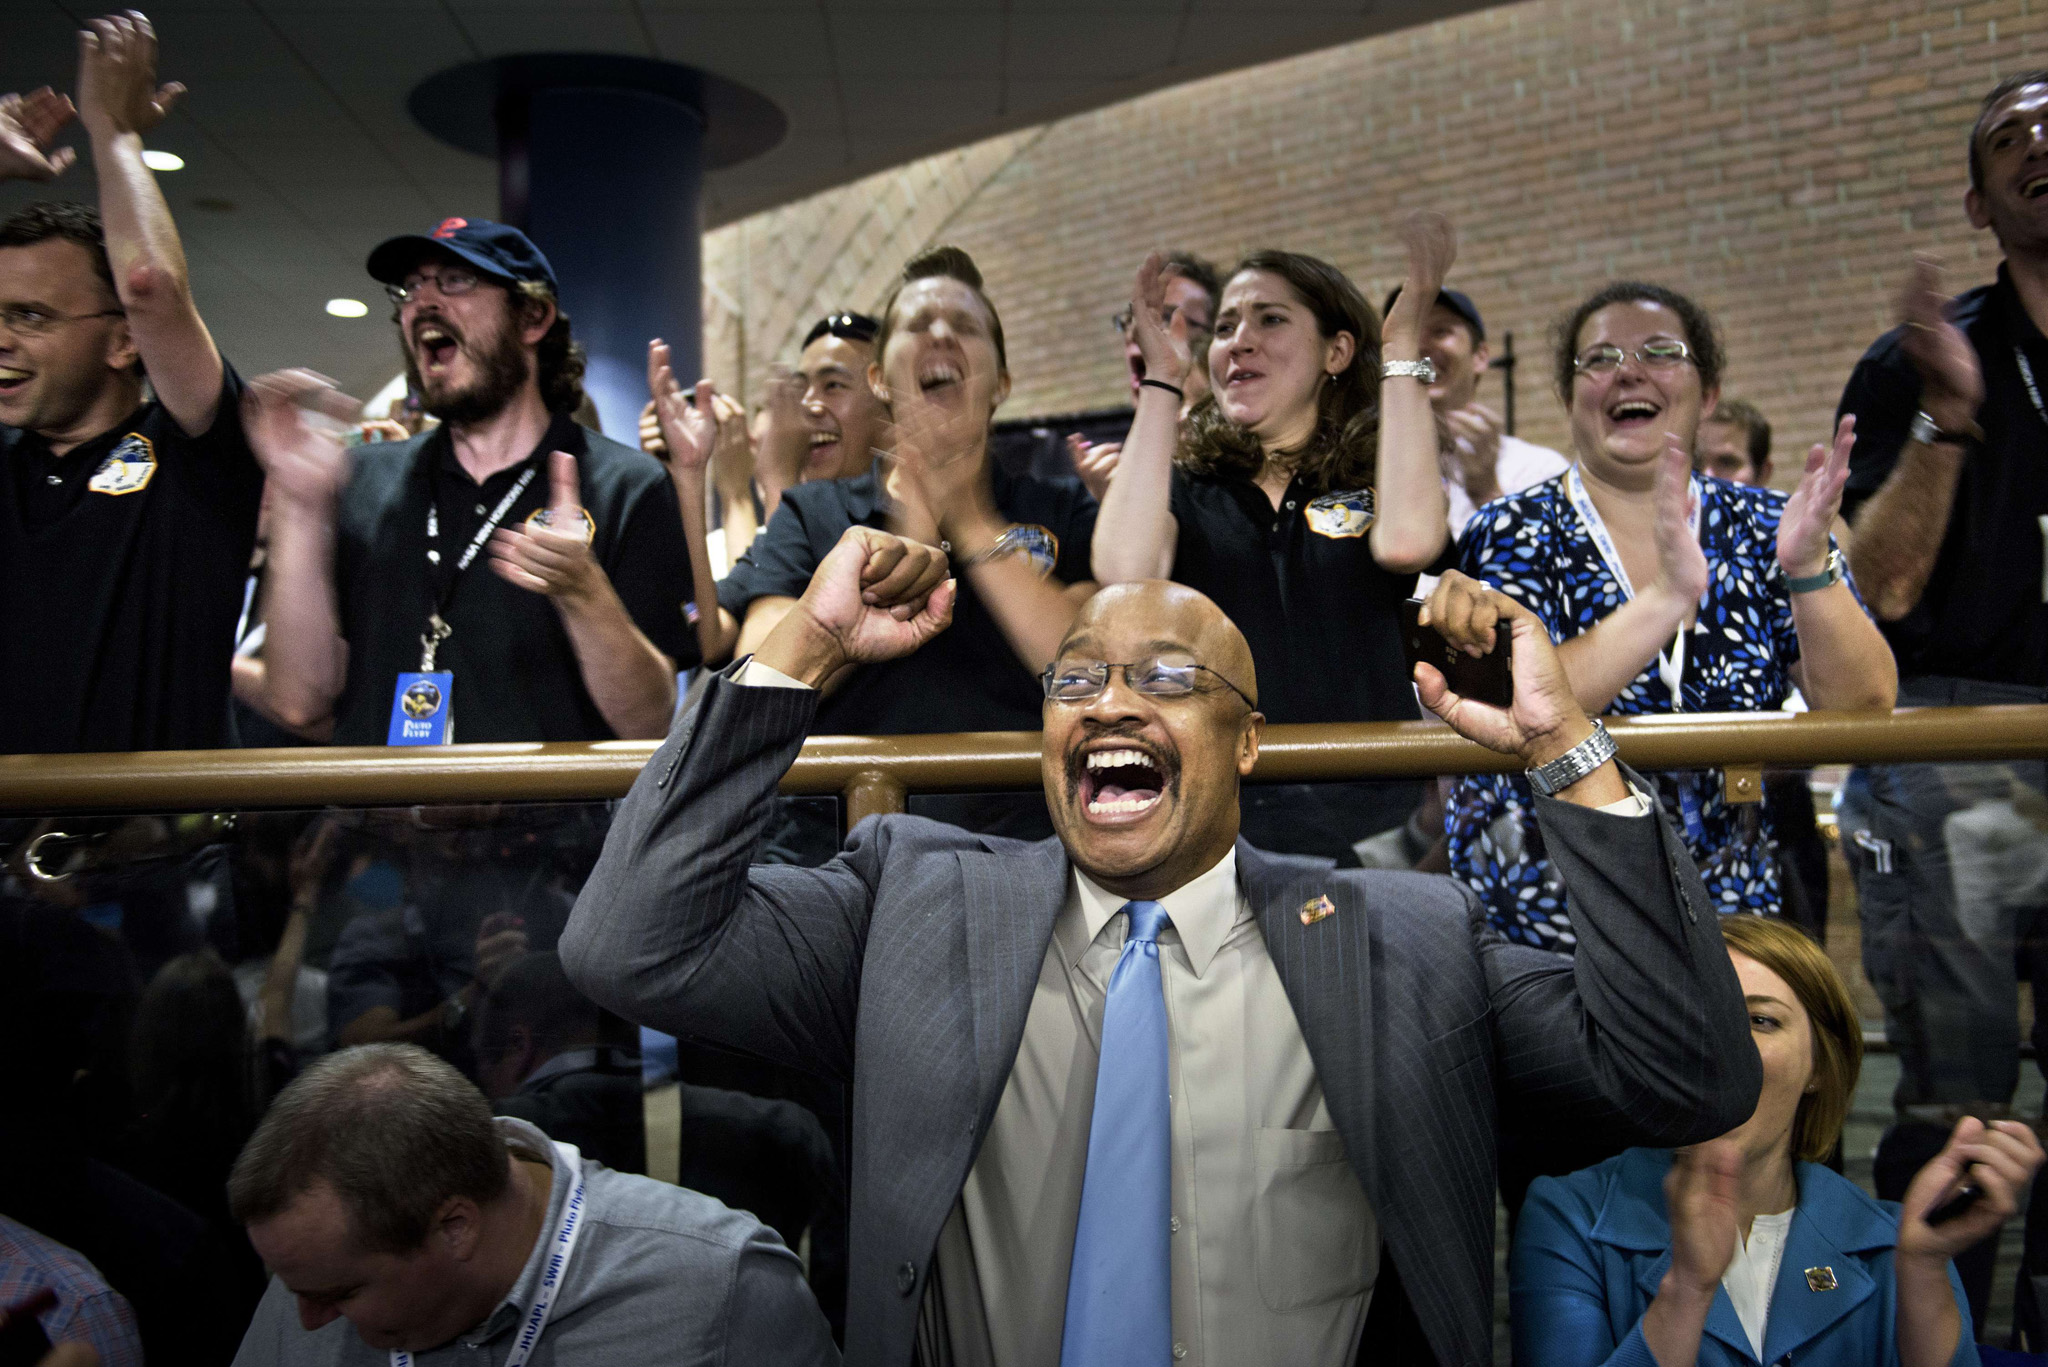 TOPSHOTS NASA and project staff react wi...TOPSHOTS NASA and project staff react with others as telemetry is received from the New Horizons probe at the Johns Hopkins University Applied Physics Laboratory in Laurel, Maryland on July 14, 2015. The New Horizons interplanetary space probe reestablished contact with NASA after safe passage completing its closest approach fly-by of Pluto making the United States the first to explore the dwarf planet. AFP PHOTO/BRENDAN SMIALOWSKIBRENDAN SMIALOWSKI/AFP/Getty Images